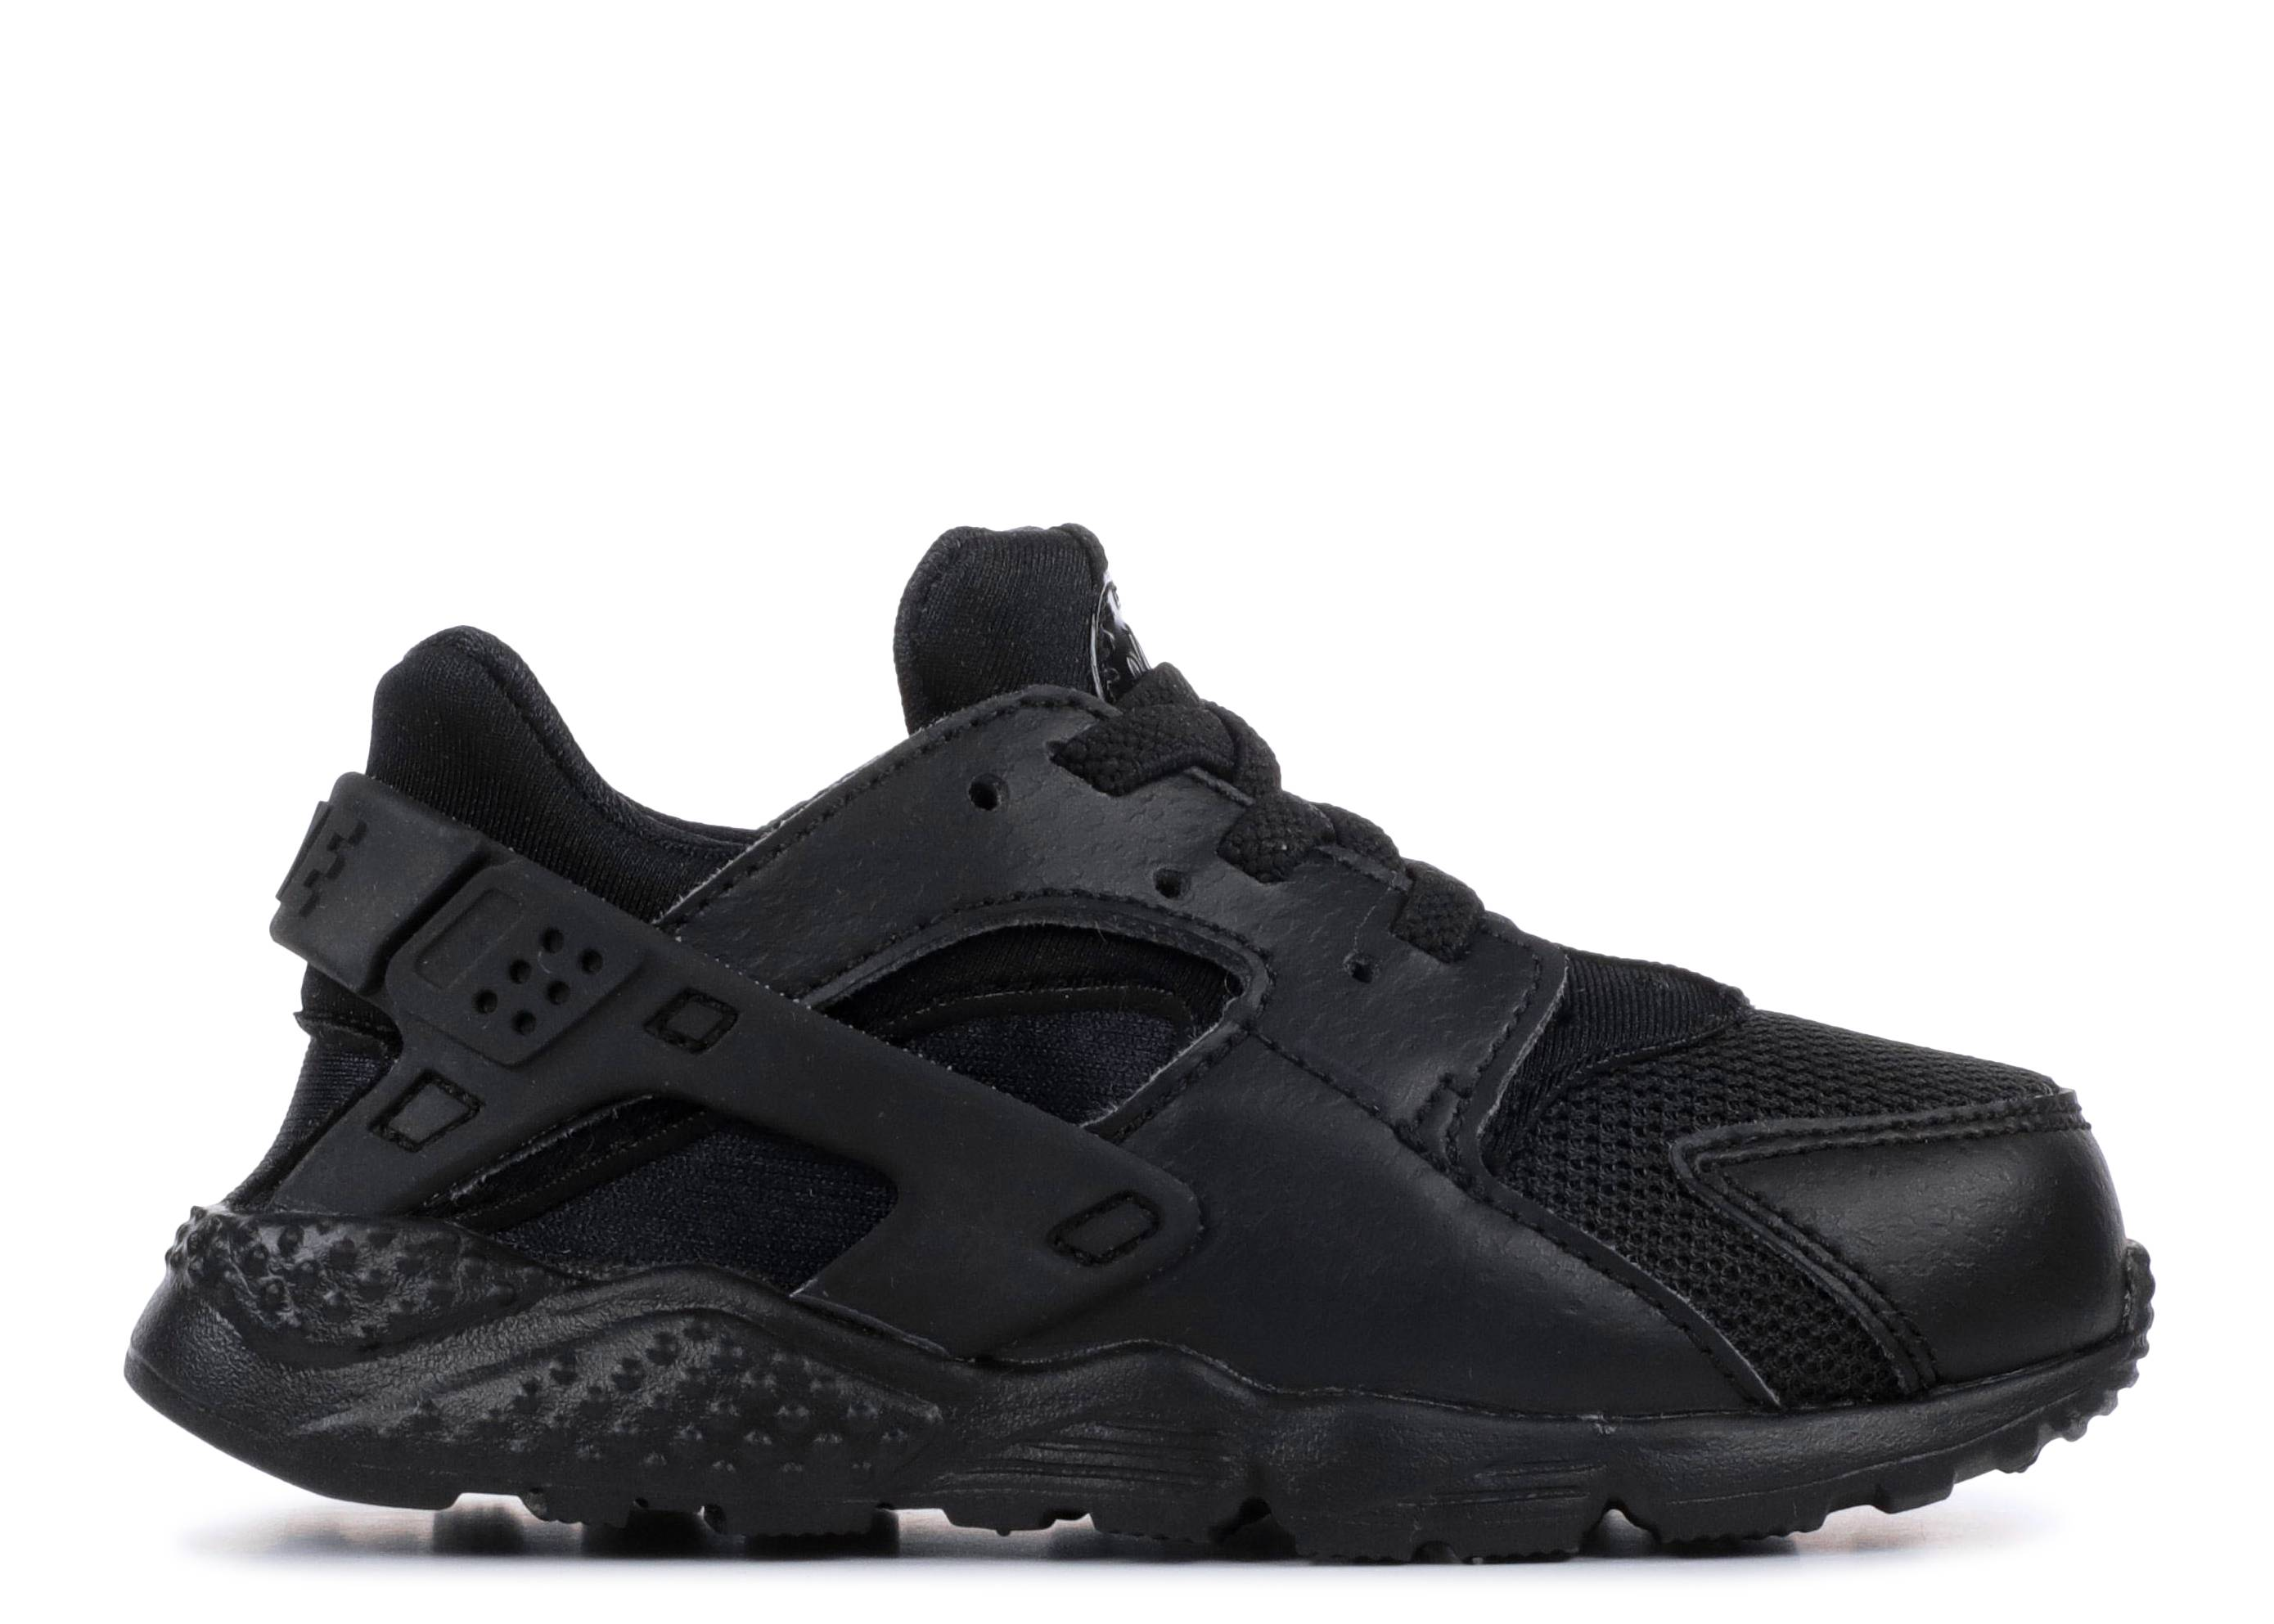 new arrivals 03bb7 577ab Nike Huaraches Shoes for Women   Men   Flight Club